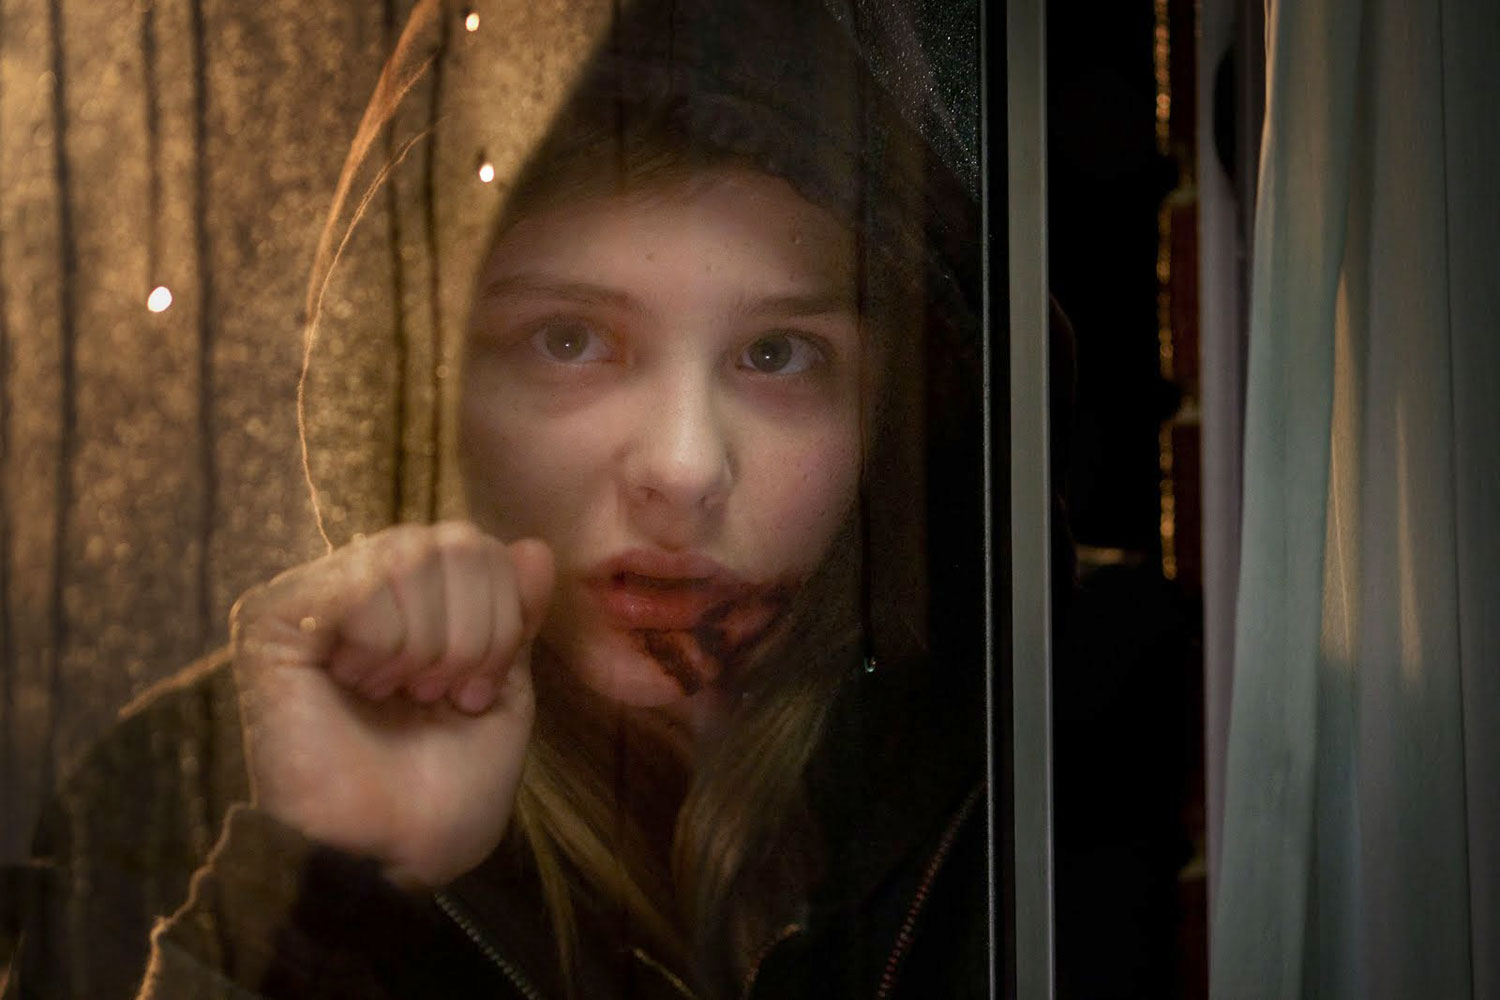 Sweden's Let The Right One In (Låt Den Rätte Komma In) is a romantic horror movie that Hollywood remade two years later with Let Me In. Both adaptations take place in the 1980s, with a 12-year-old bullied boy befriending a young female vampire. In the original version, however, the young vampire's gender is ambiguous, leaving […]